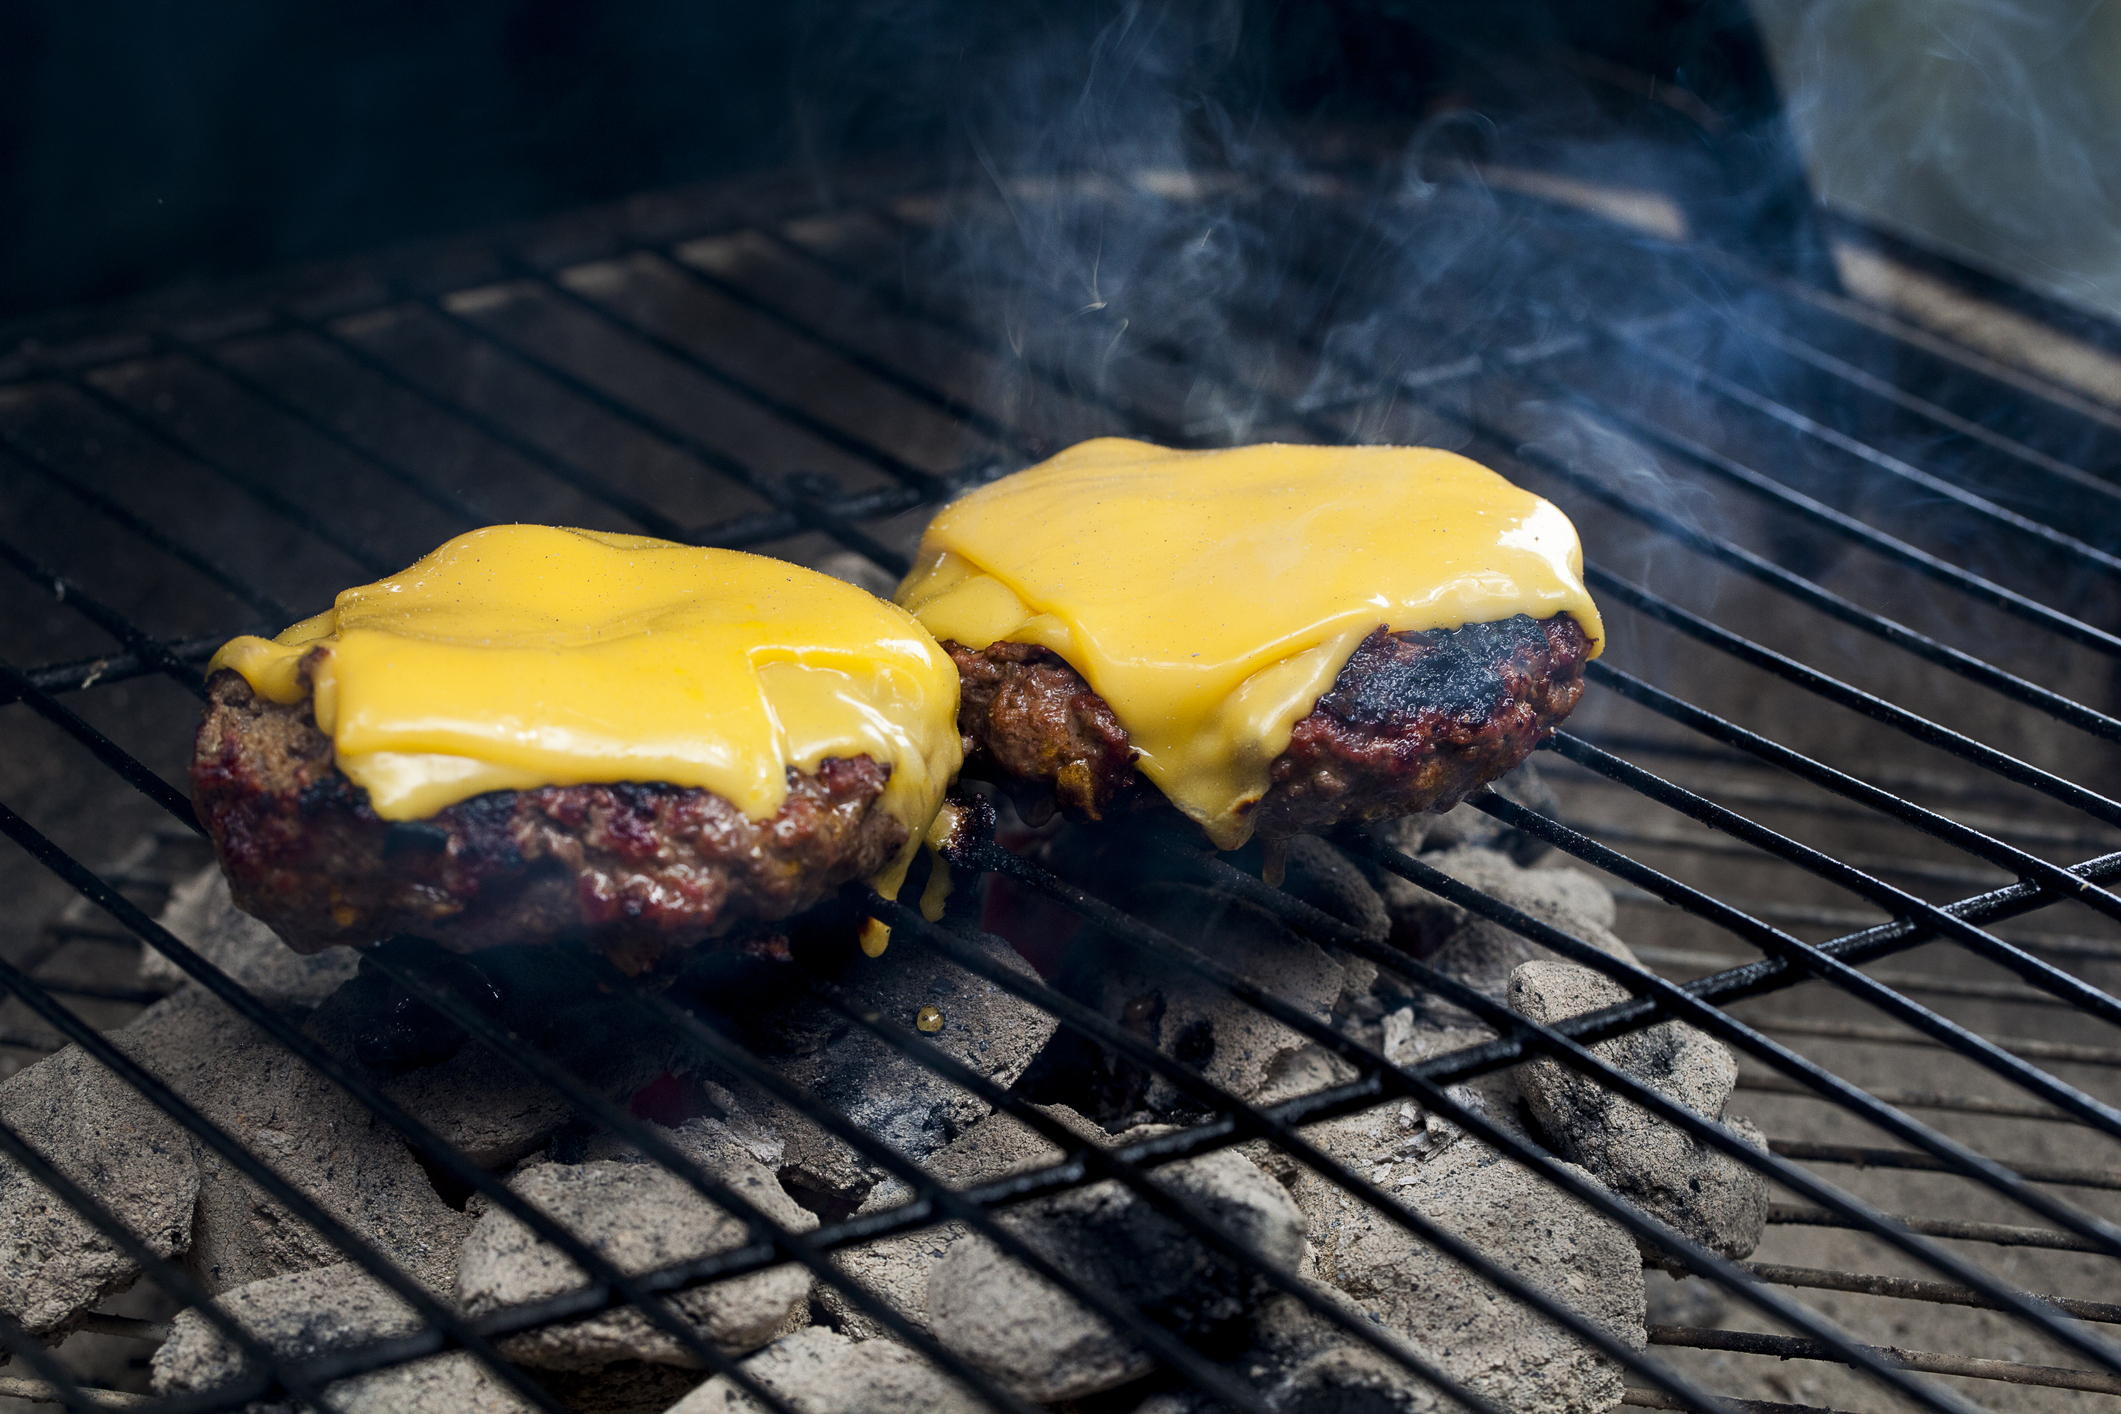 1. Grilled Burgers